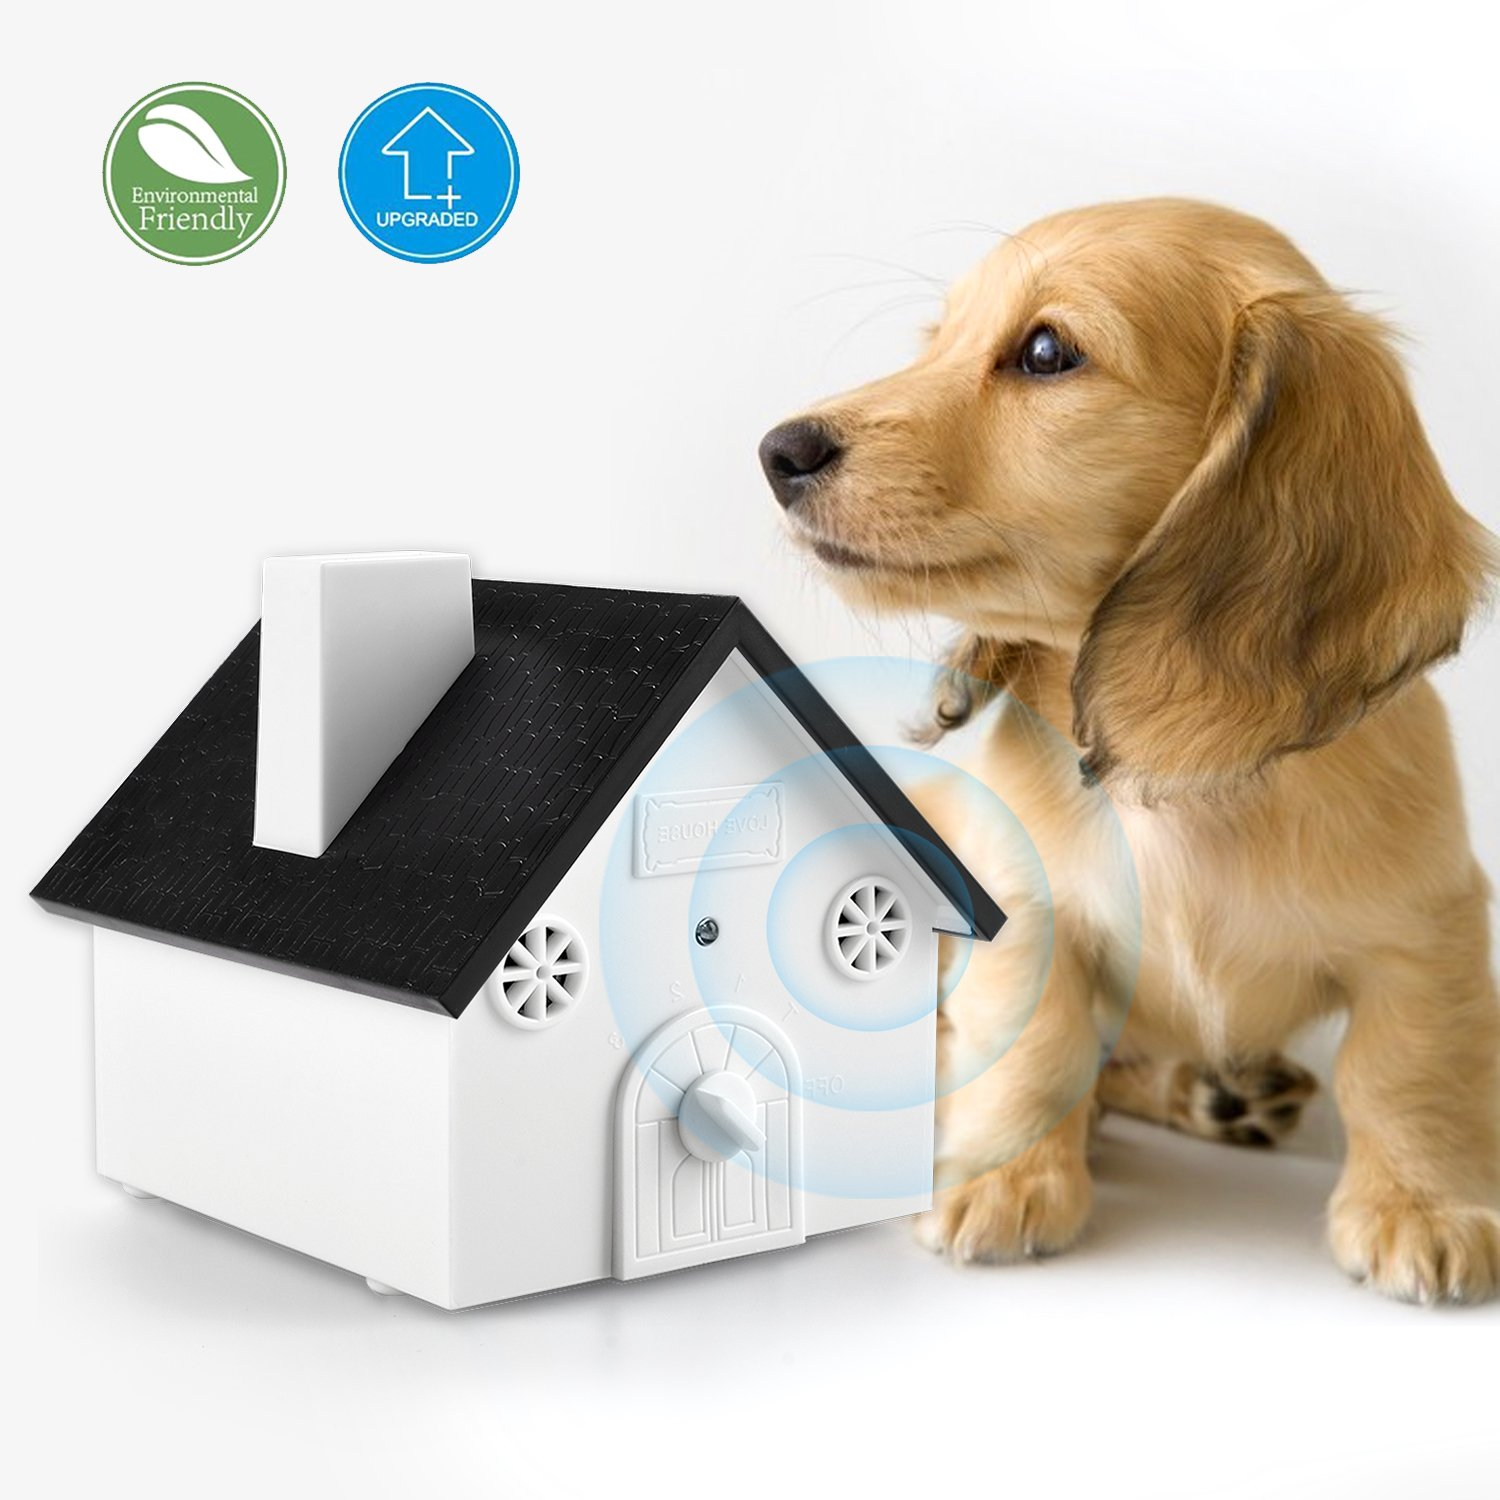 Homitem Ultrasonic Outdoor Bark Controller Anti-barking Devices Sonic Bark Deterrent by, No Harm To Dogs or other Pets,Plant,Human,Easy Hanging/Mounting,3 Modes,Birdhouse Shaped(White)